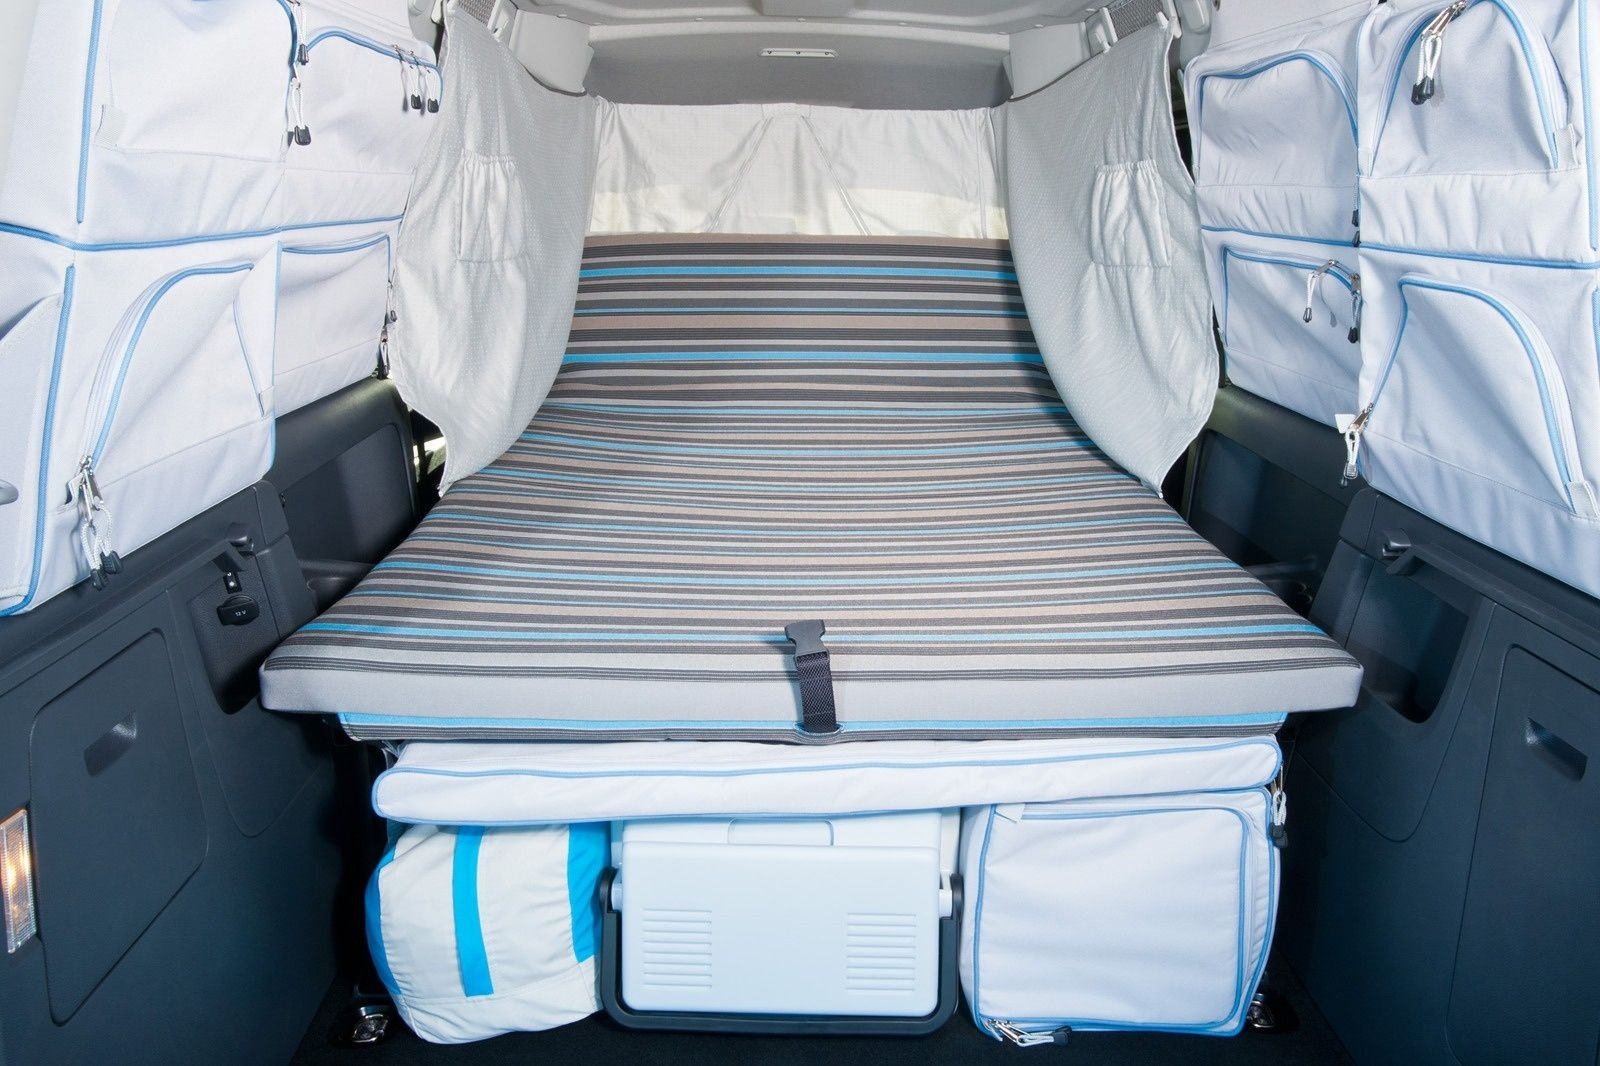 At Metres Long And High The Caddy Maxi Is Most Compact Affordable Model In Volkswagens Current Camper Range